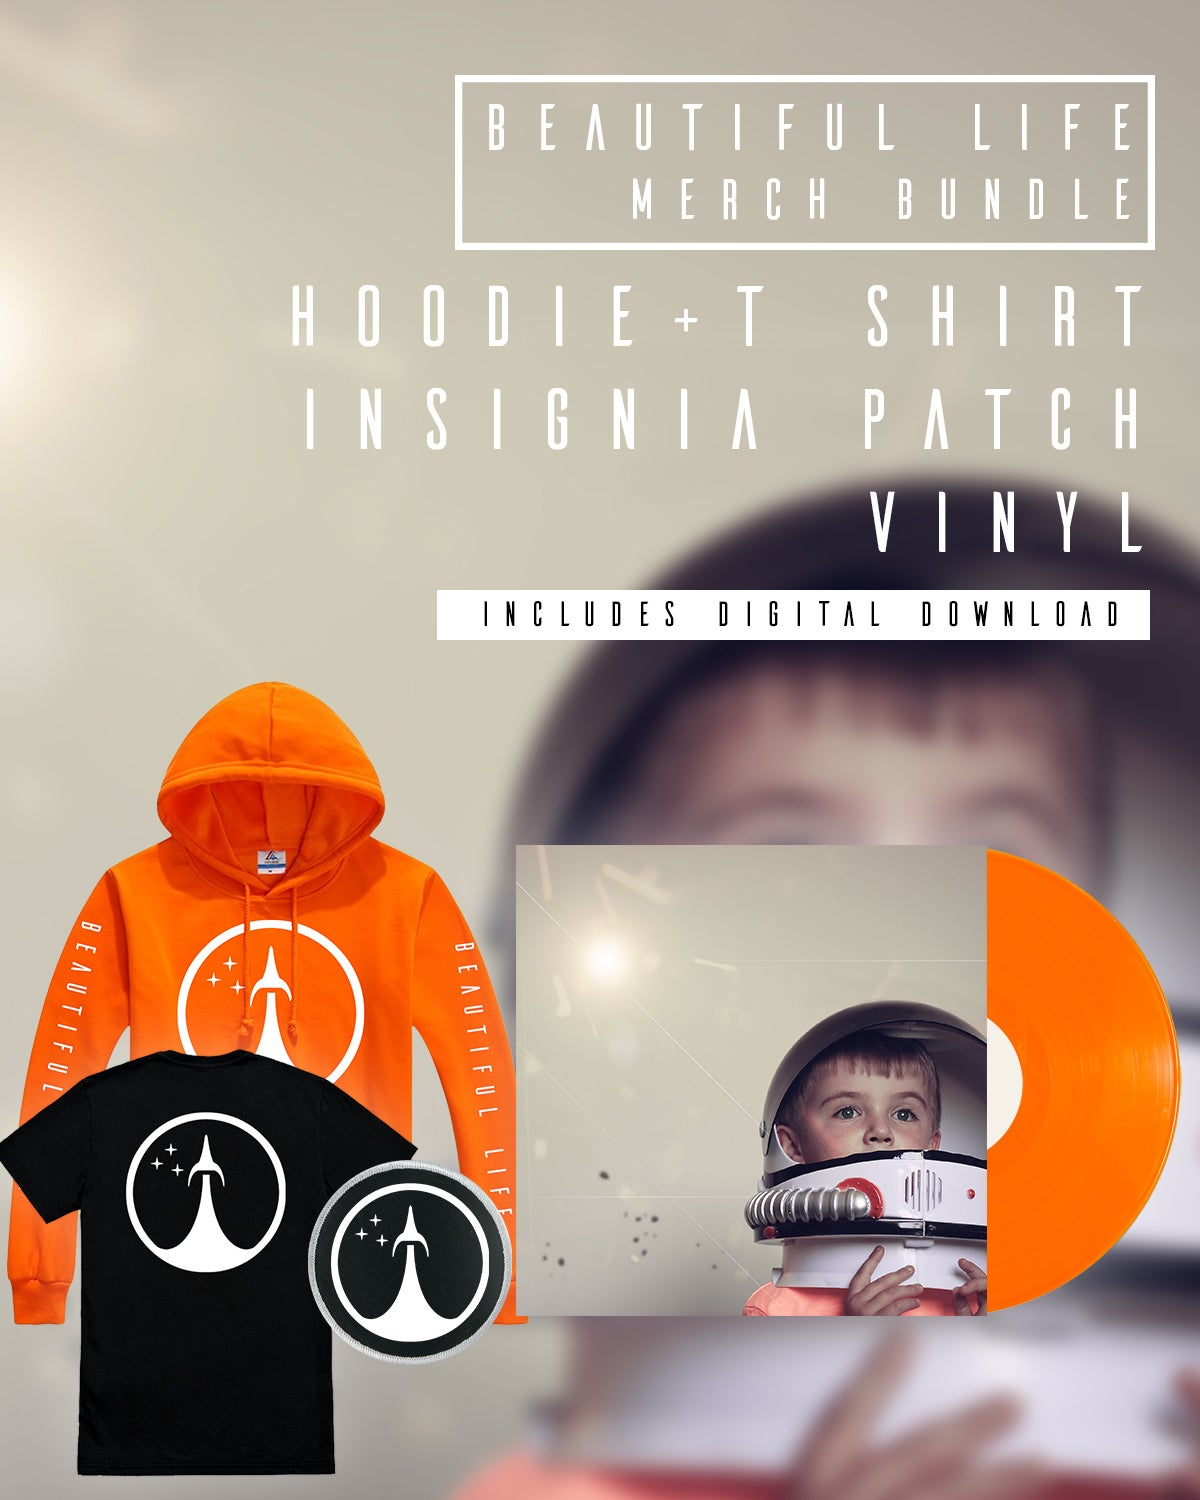 Image of Beautiful Life Pre Order Hoodie/Shirt Bundle